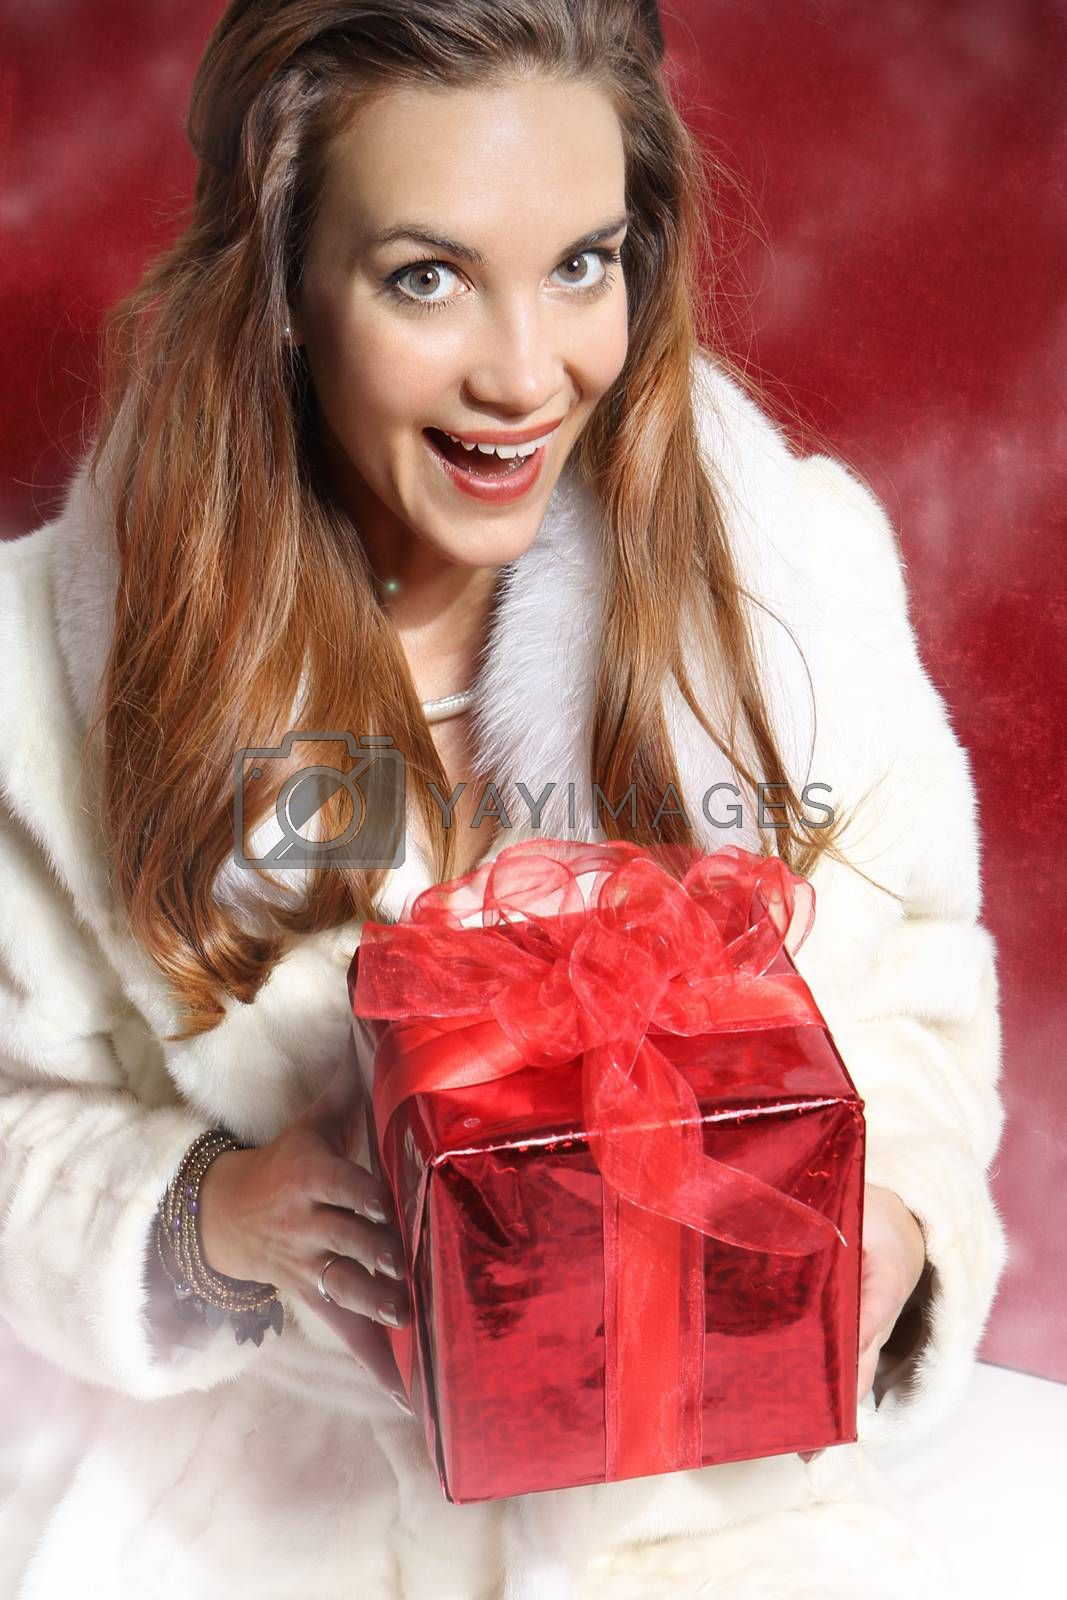 Beautiful Christmas woman in a white fur coat by Robert Przybysz